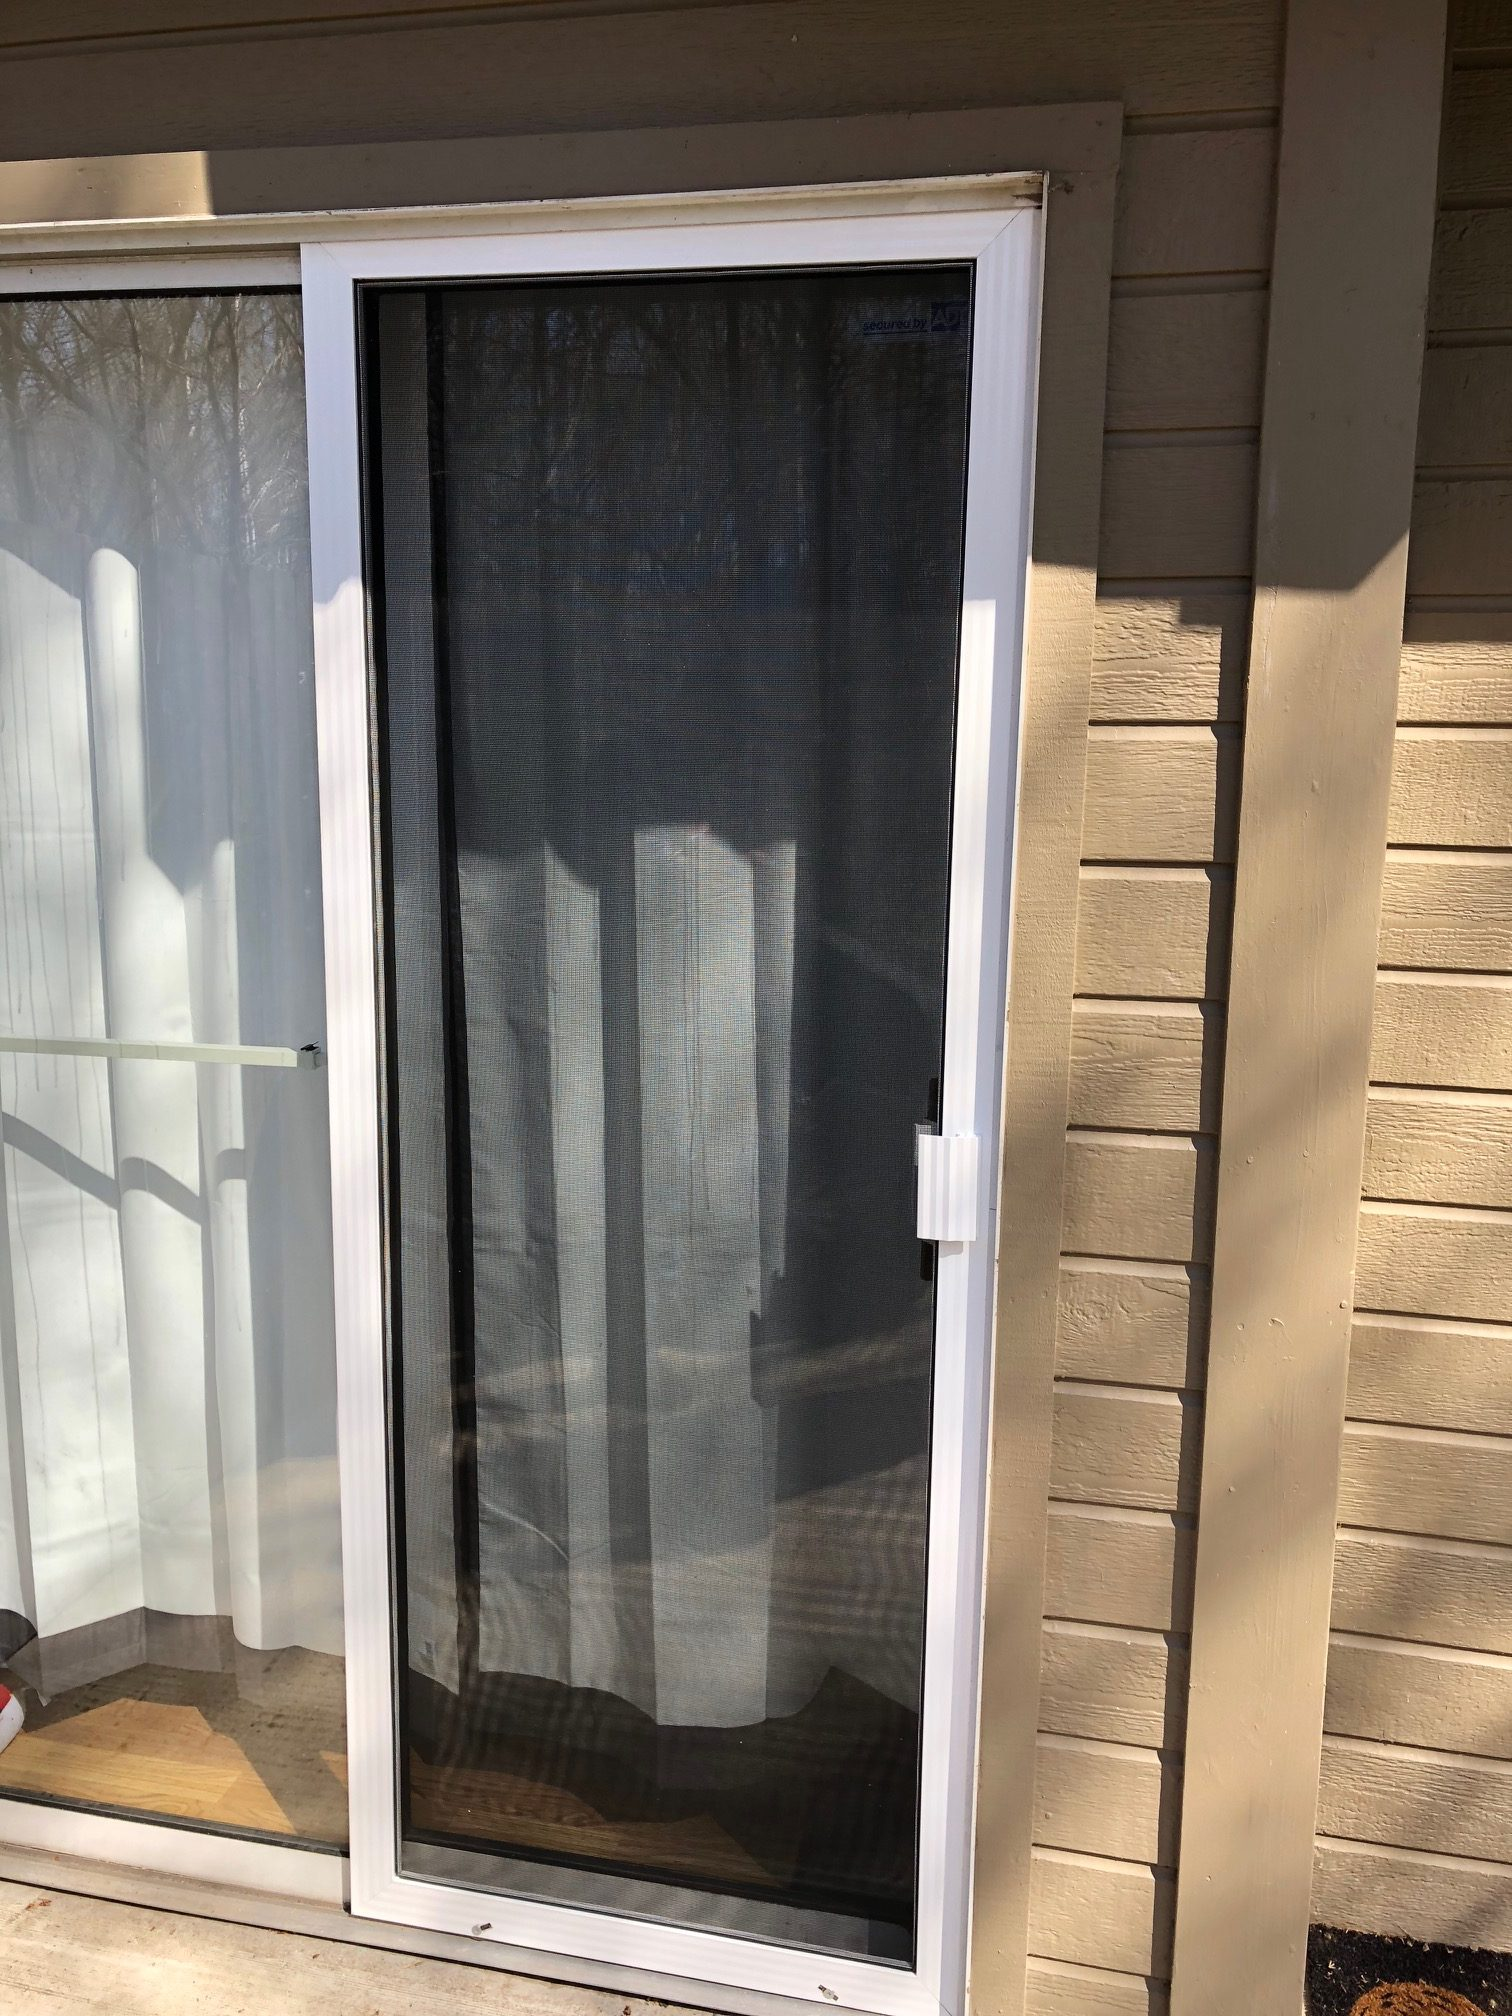 Kansas Cityu0027s Window and Porch Rescreening Experts & Kansas Cityu0027s Window and Porch Rescreening Experts | Screens Onsite KC